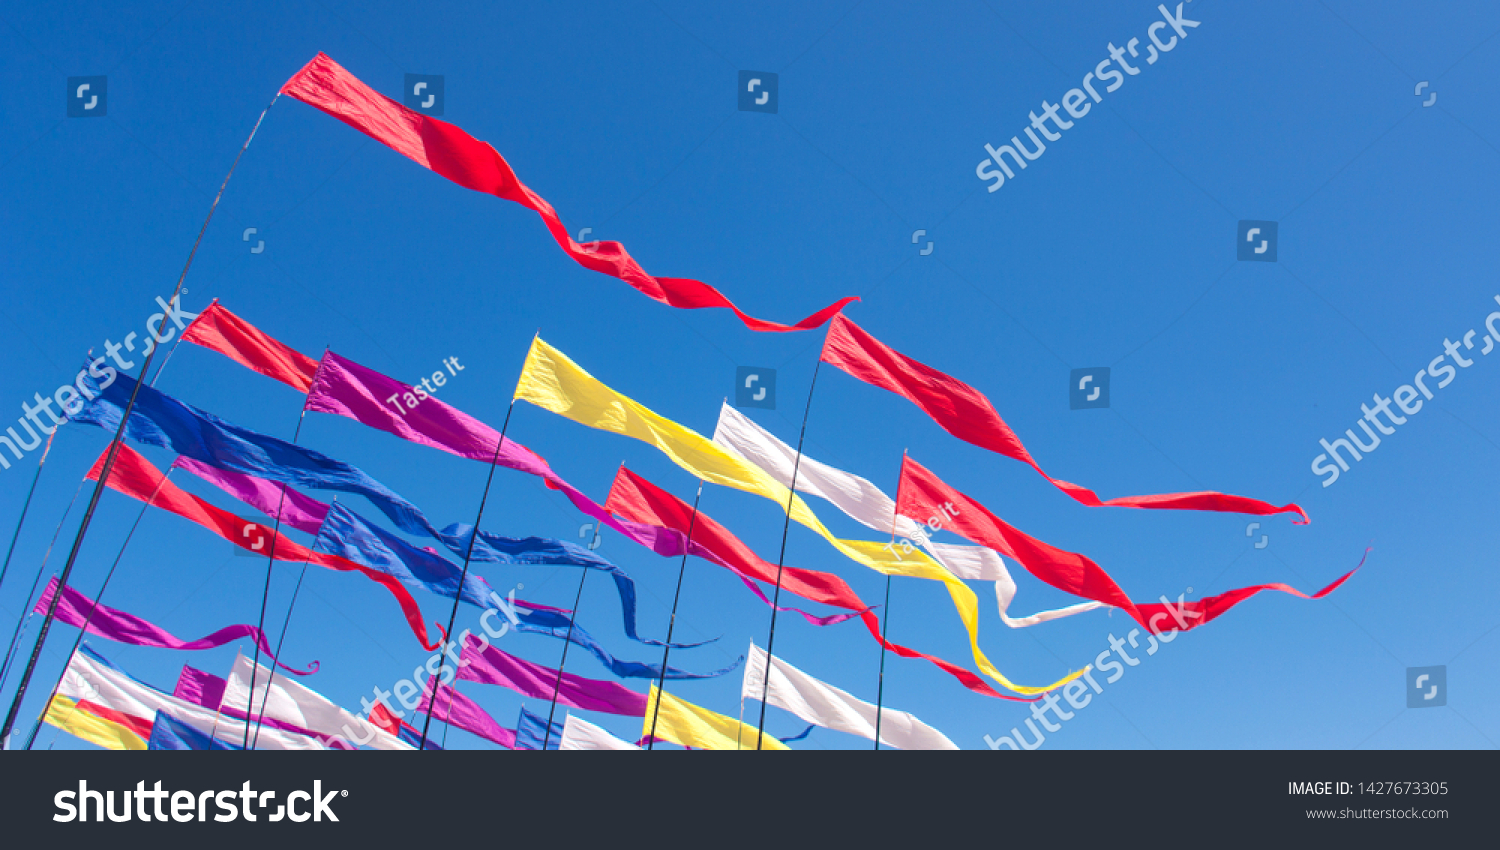 Multicolored kites in the form of bright ribbons on pillars, fluttering in the blue sunny sky in windy weather. Banner #1427673305